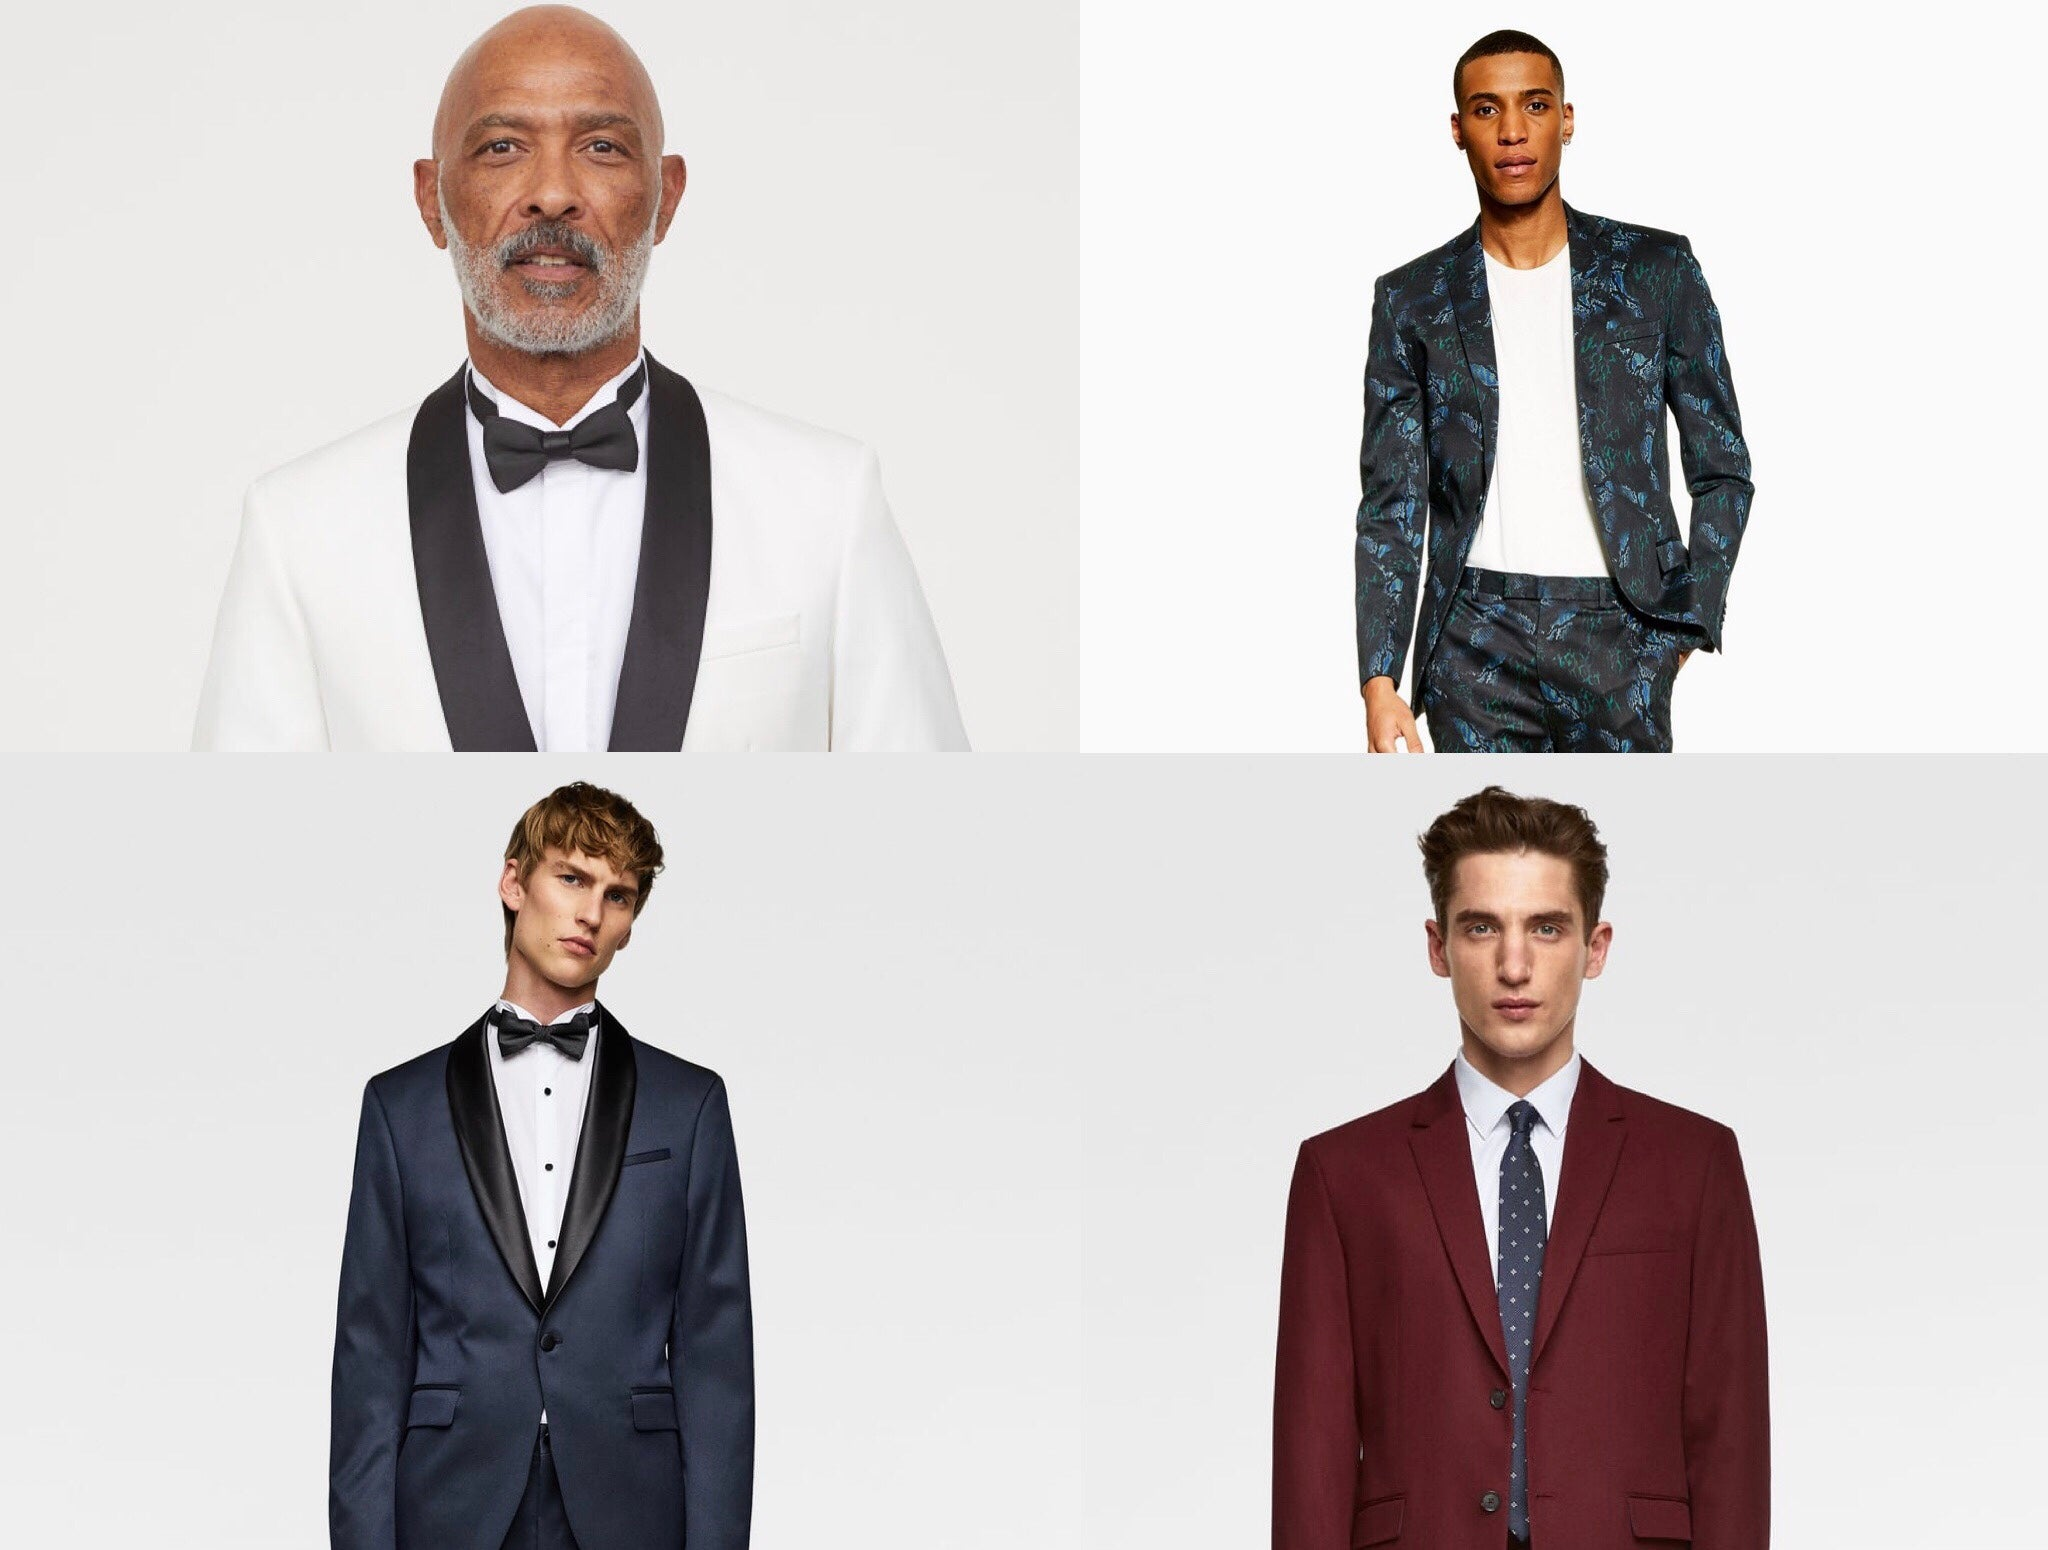 Stylish & Affordable Suits - Taft Recommends